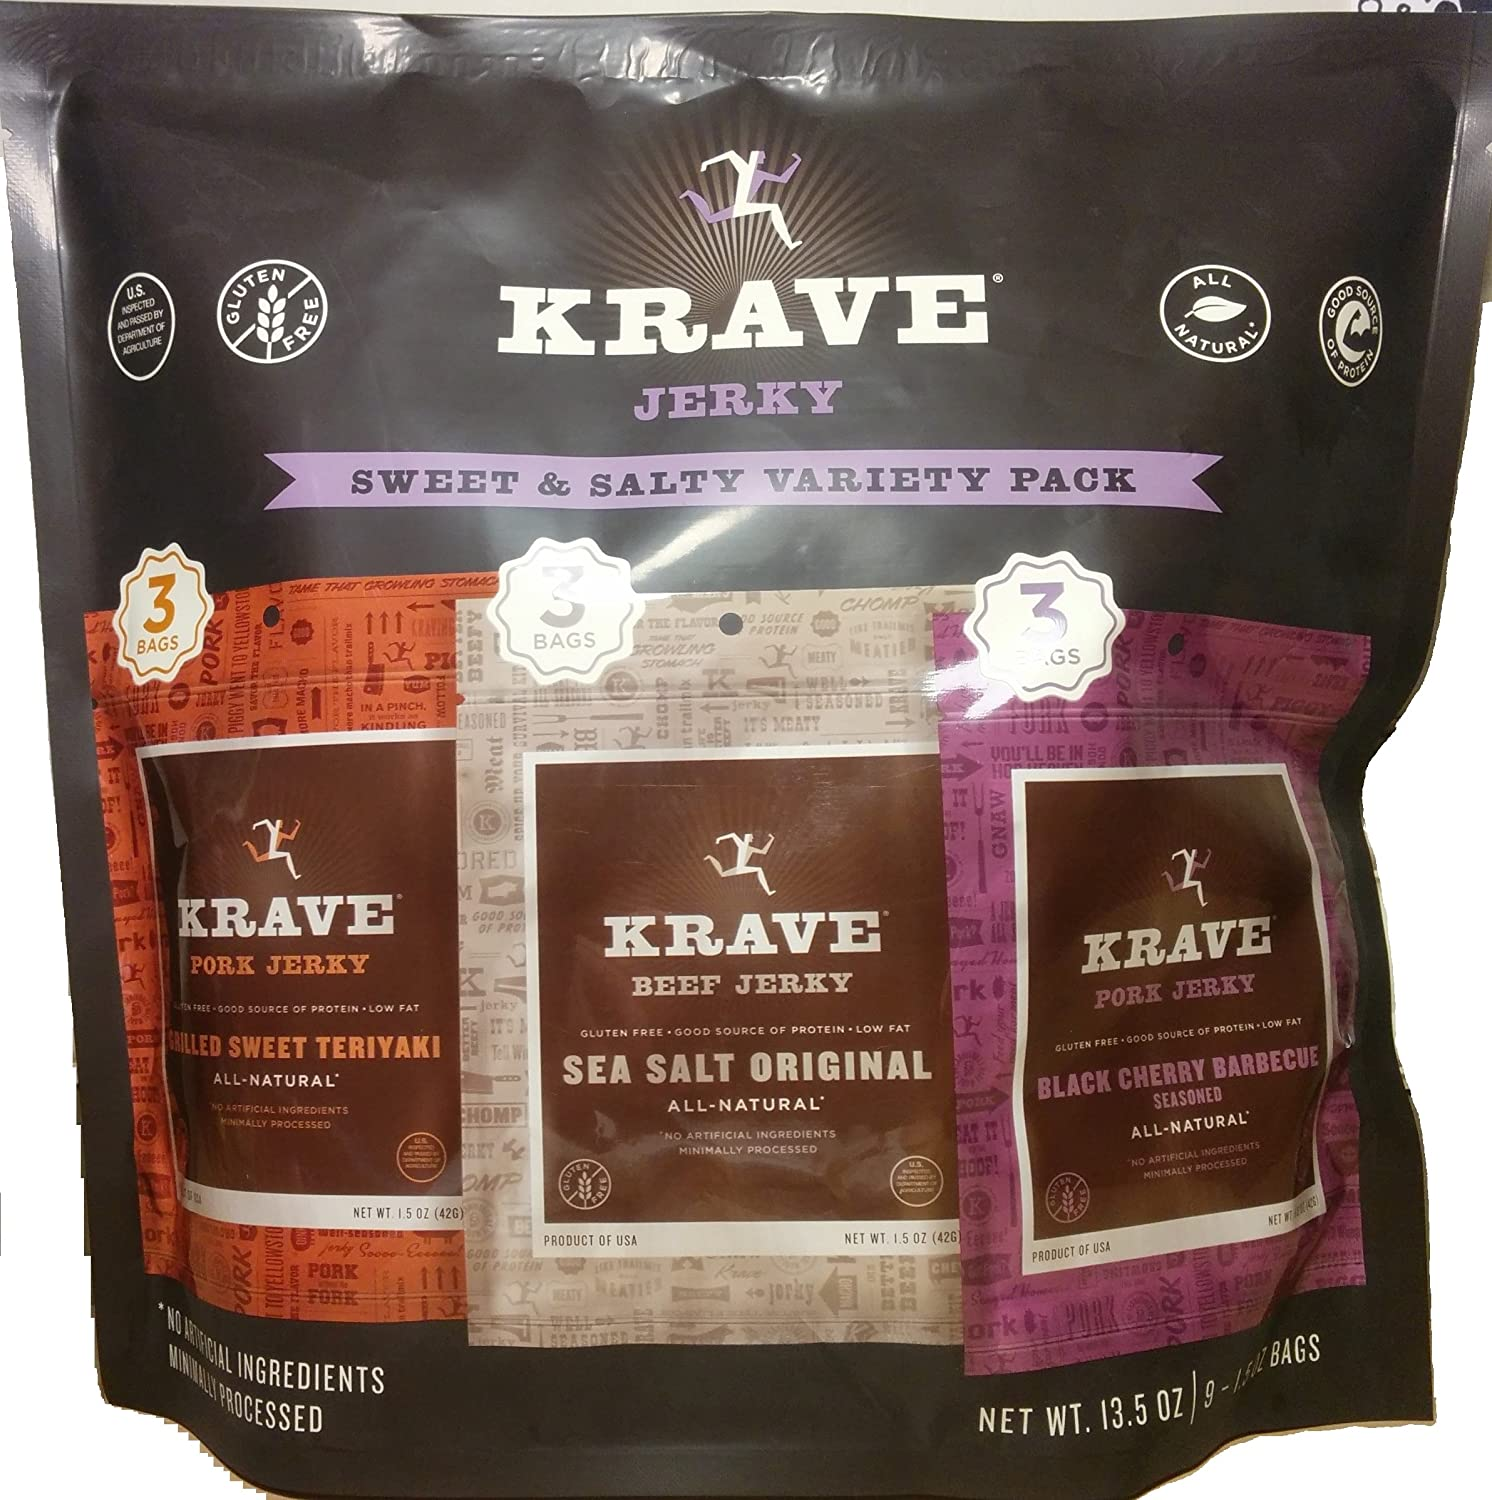 Krave Jerky Sweet & Salty Variety Pack (9 Pack)